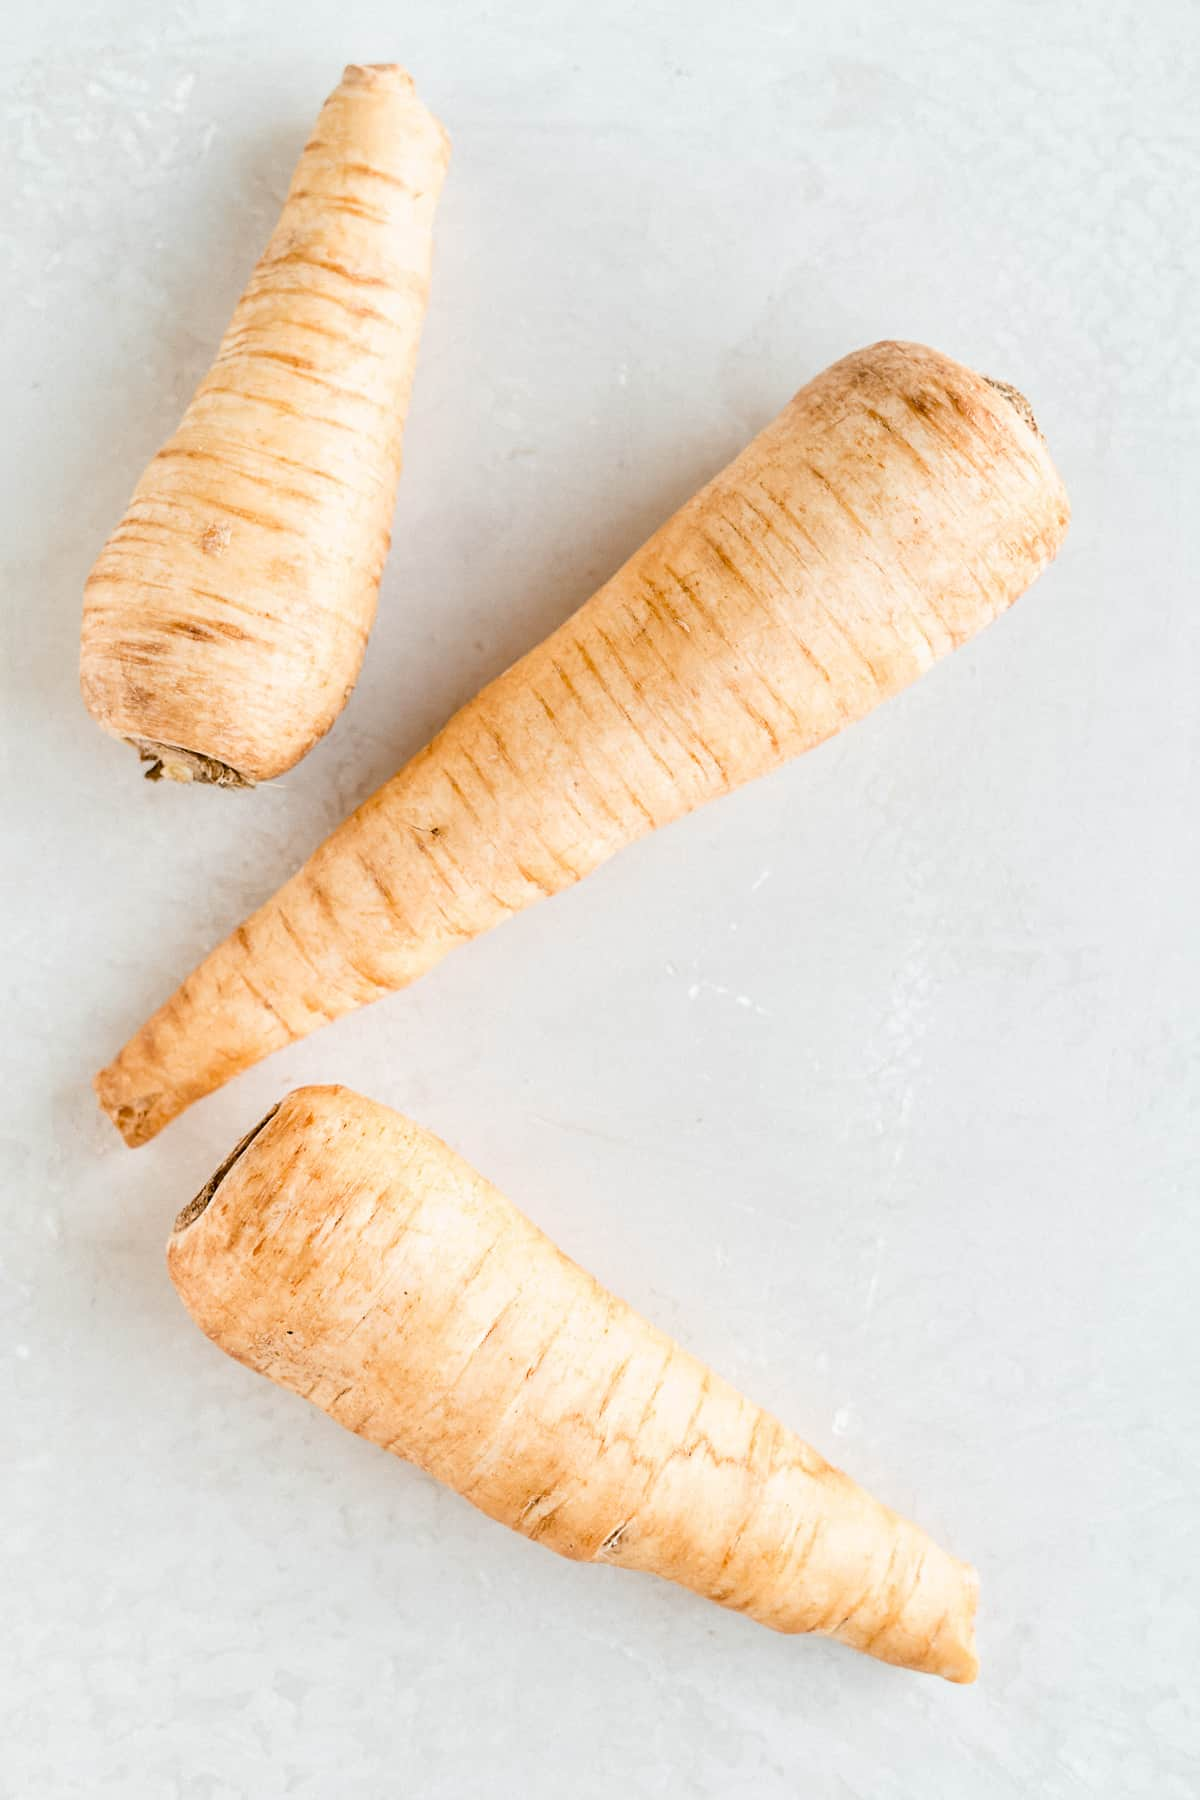 Overhead photo of several parsnips laying on a marble slab.